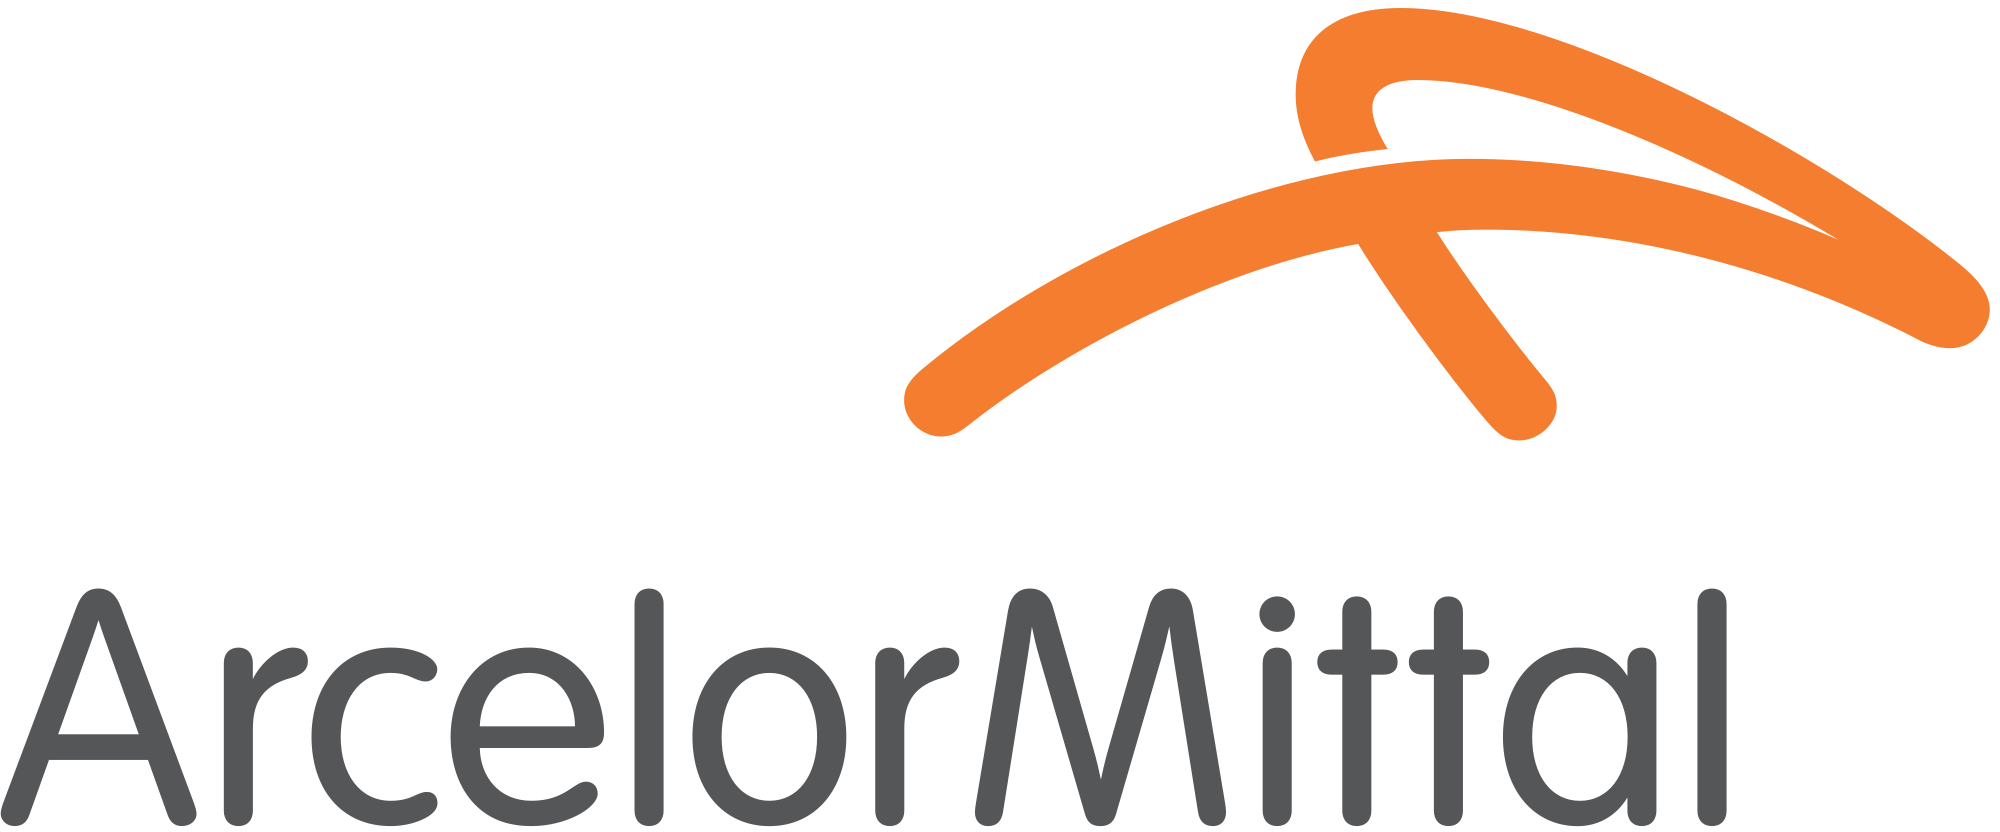 ArcelorMittal S.A. is a multinational steel manufacturing corporation. It was formed in 2006 from the takeover and merger of Arcelor by Mittal Steel. ArcelorMittal is the world's largest steel producer.